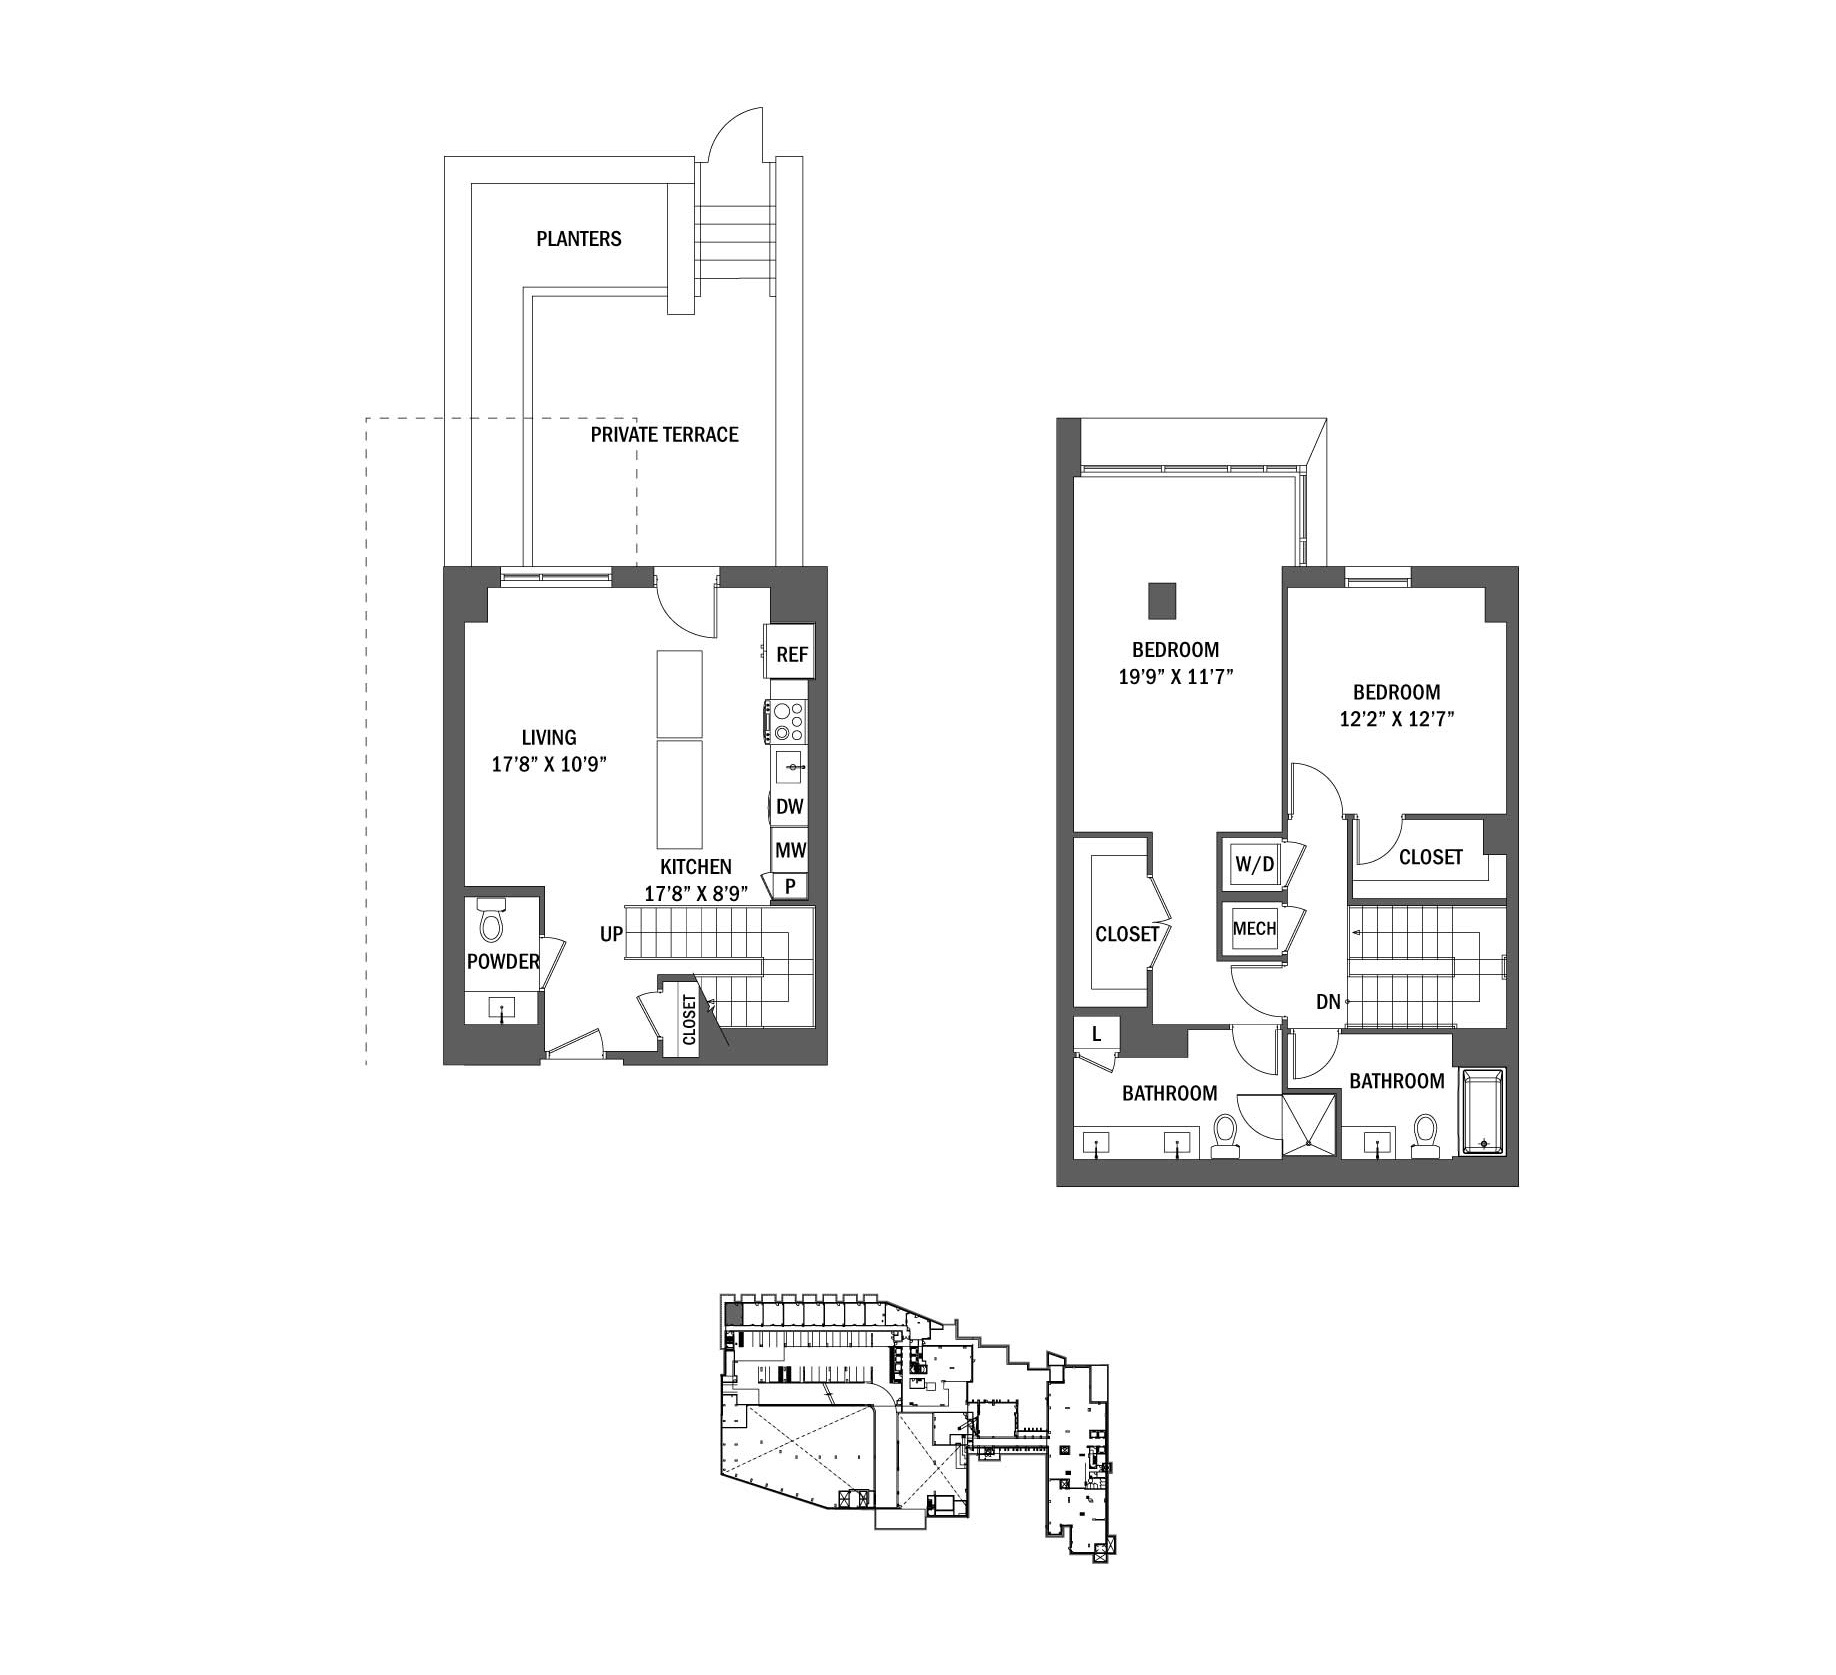 P0625338 n01 gp 2 floorplan